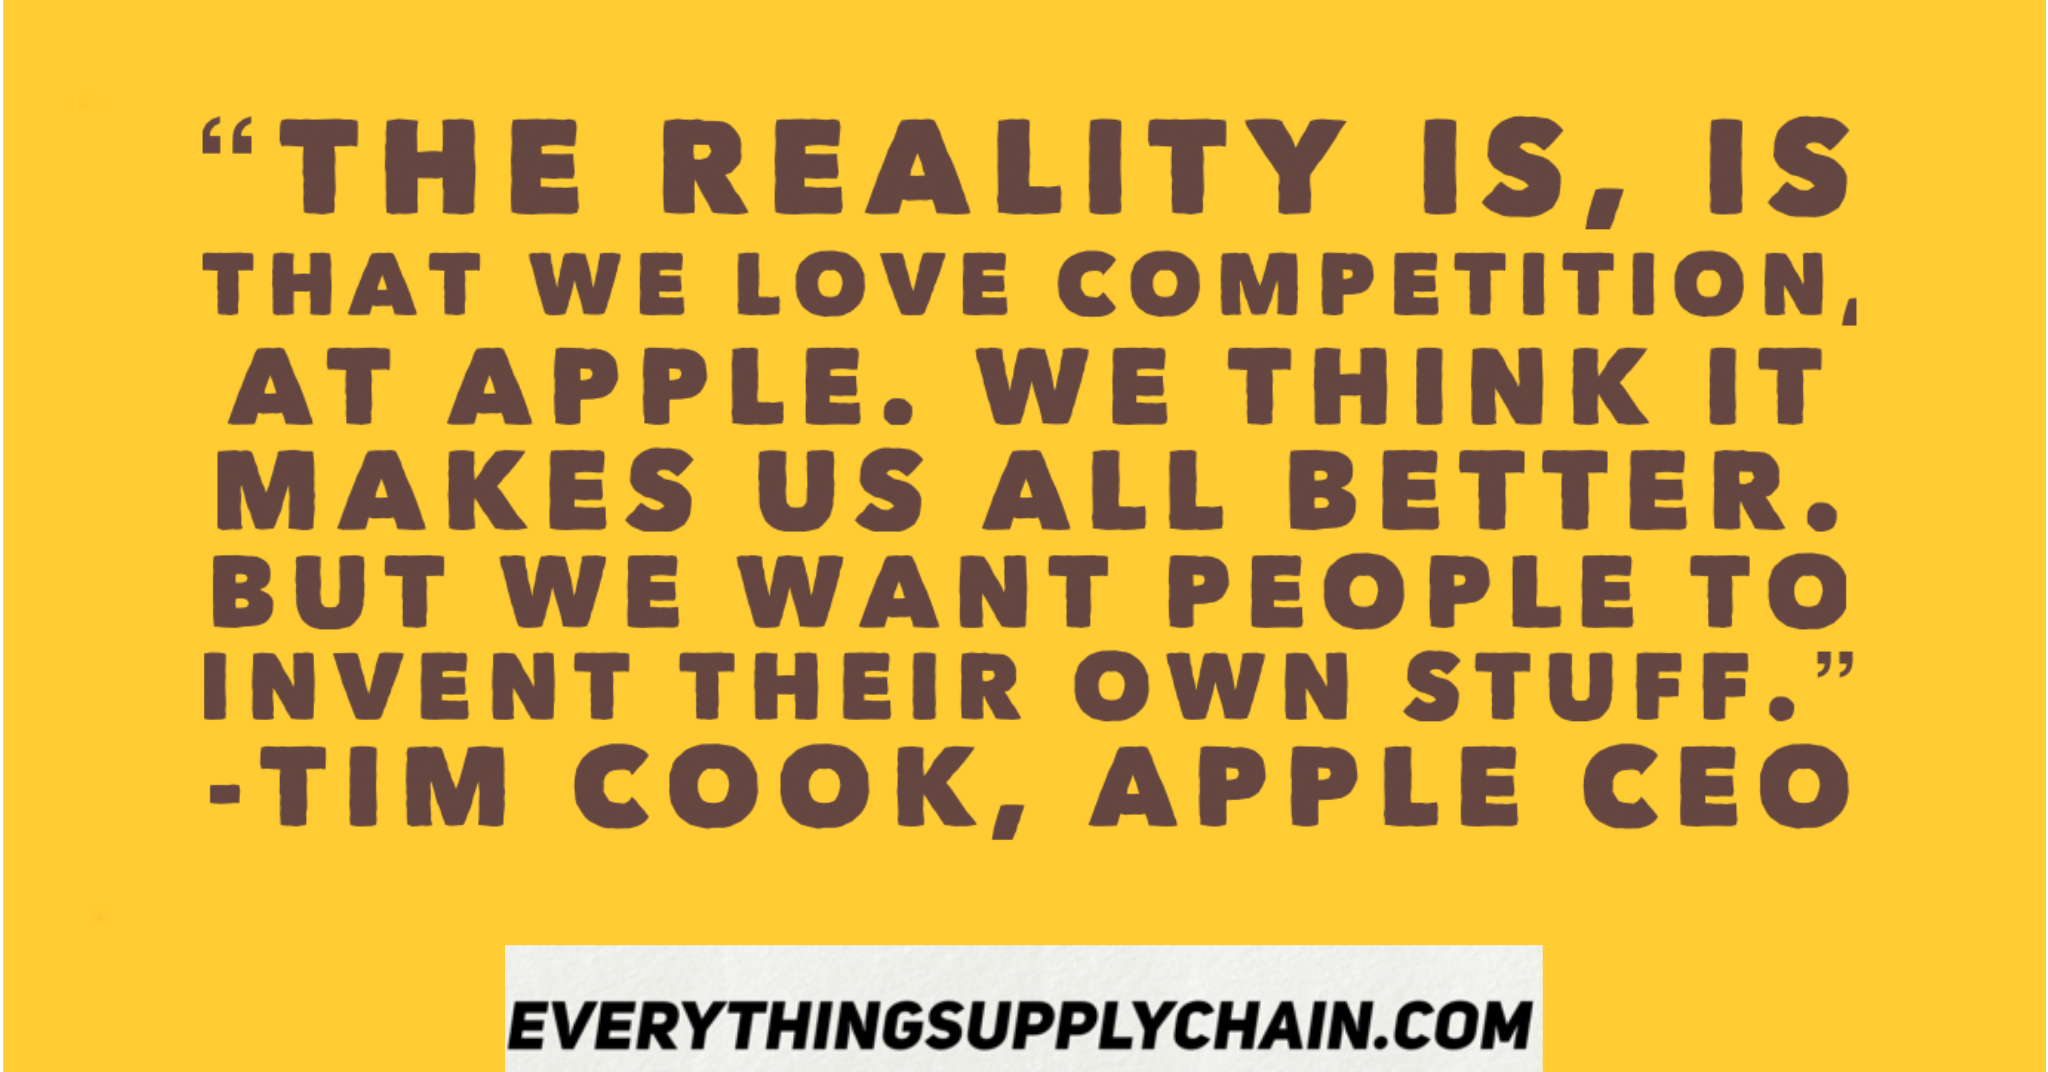 Tim Cook Quotes CEO Apple - Supply Chain Today